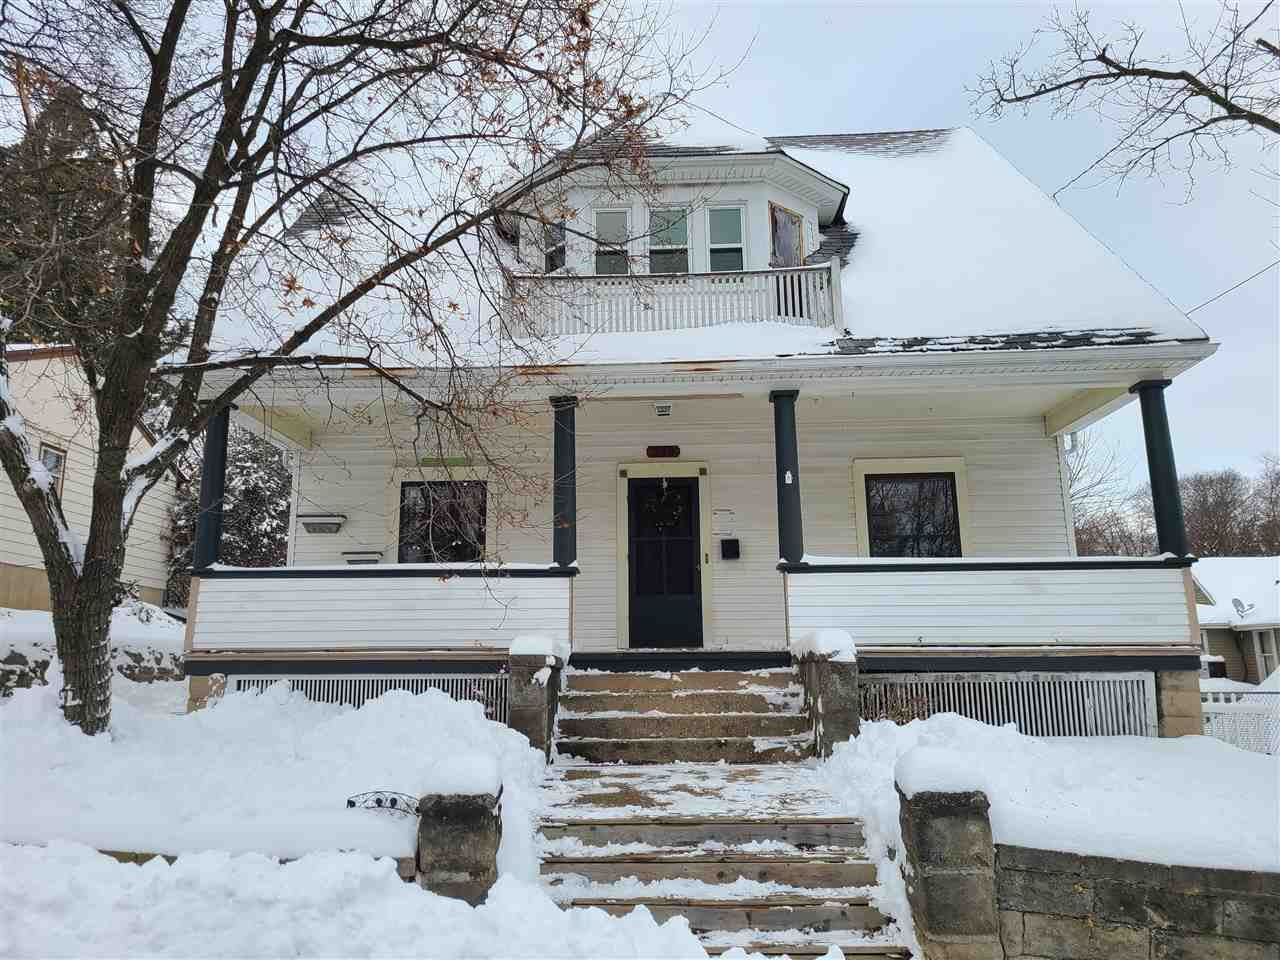 339 S Division St, Janesville, WI 53545 - #: 1899965